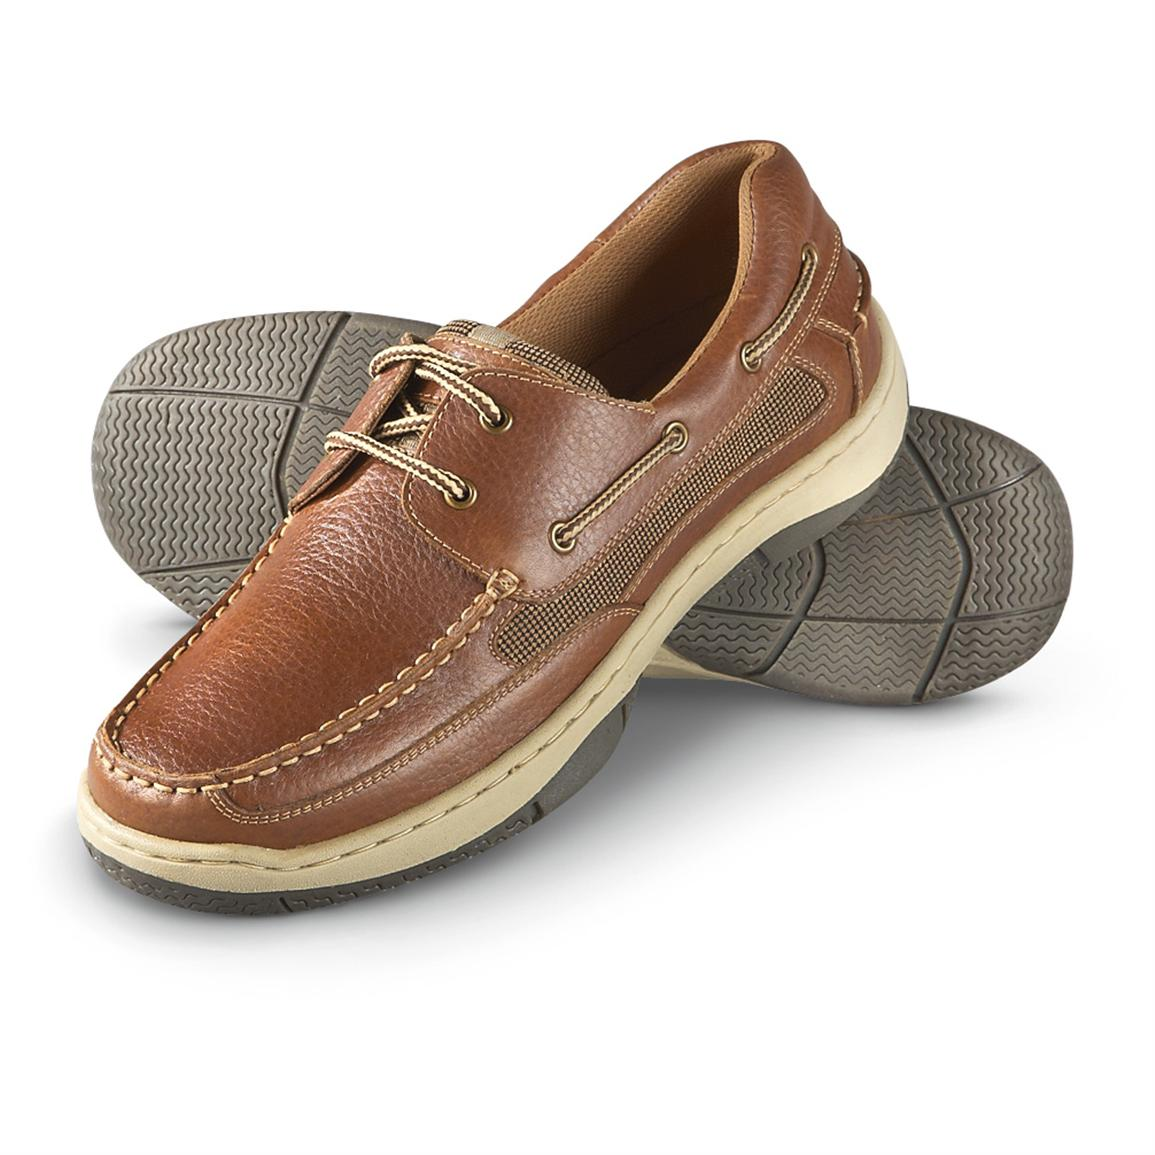 Guide Gear Boat Shoes, Tan